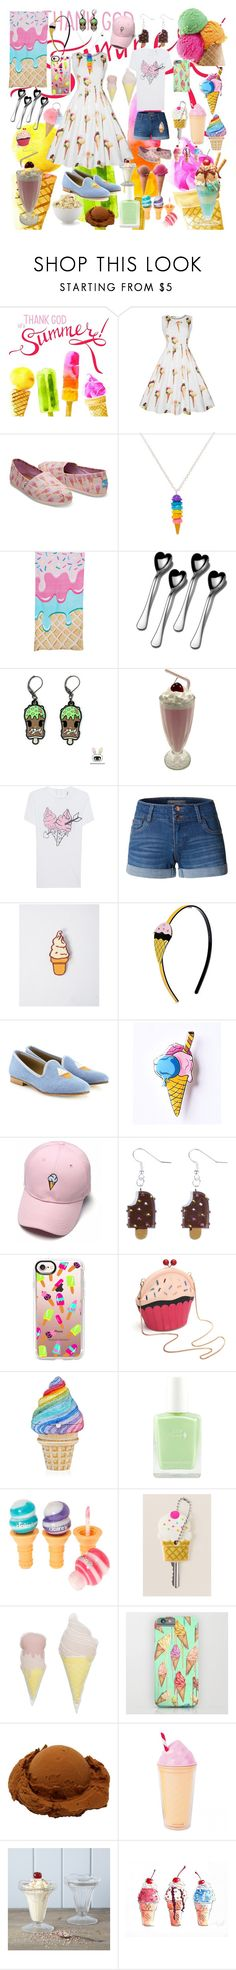 """For the love of ice cream!"" by fandom-girl365790 ❤ liked on Polyvore featuring TOMS, Towle, Zoe Karssen, LE3NO, Ana Accessories, Del Toro, Casetify, Natural Life, Bloomingville and Rigby & Mac"